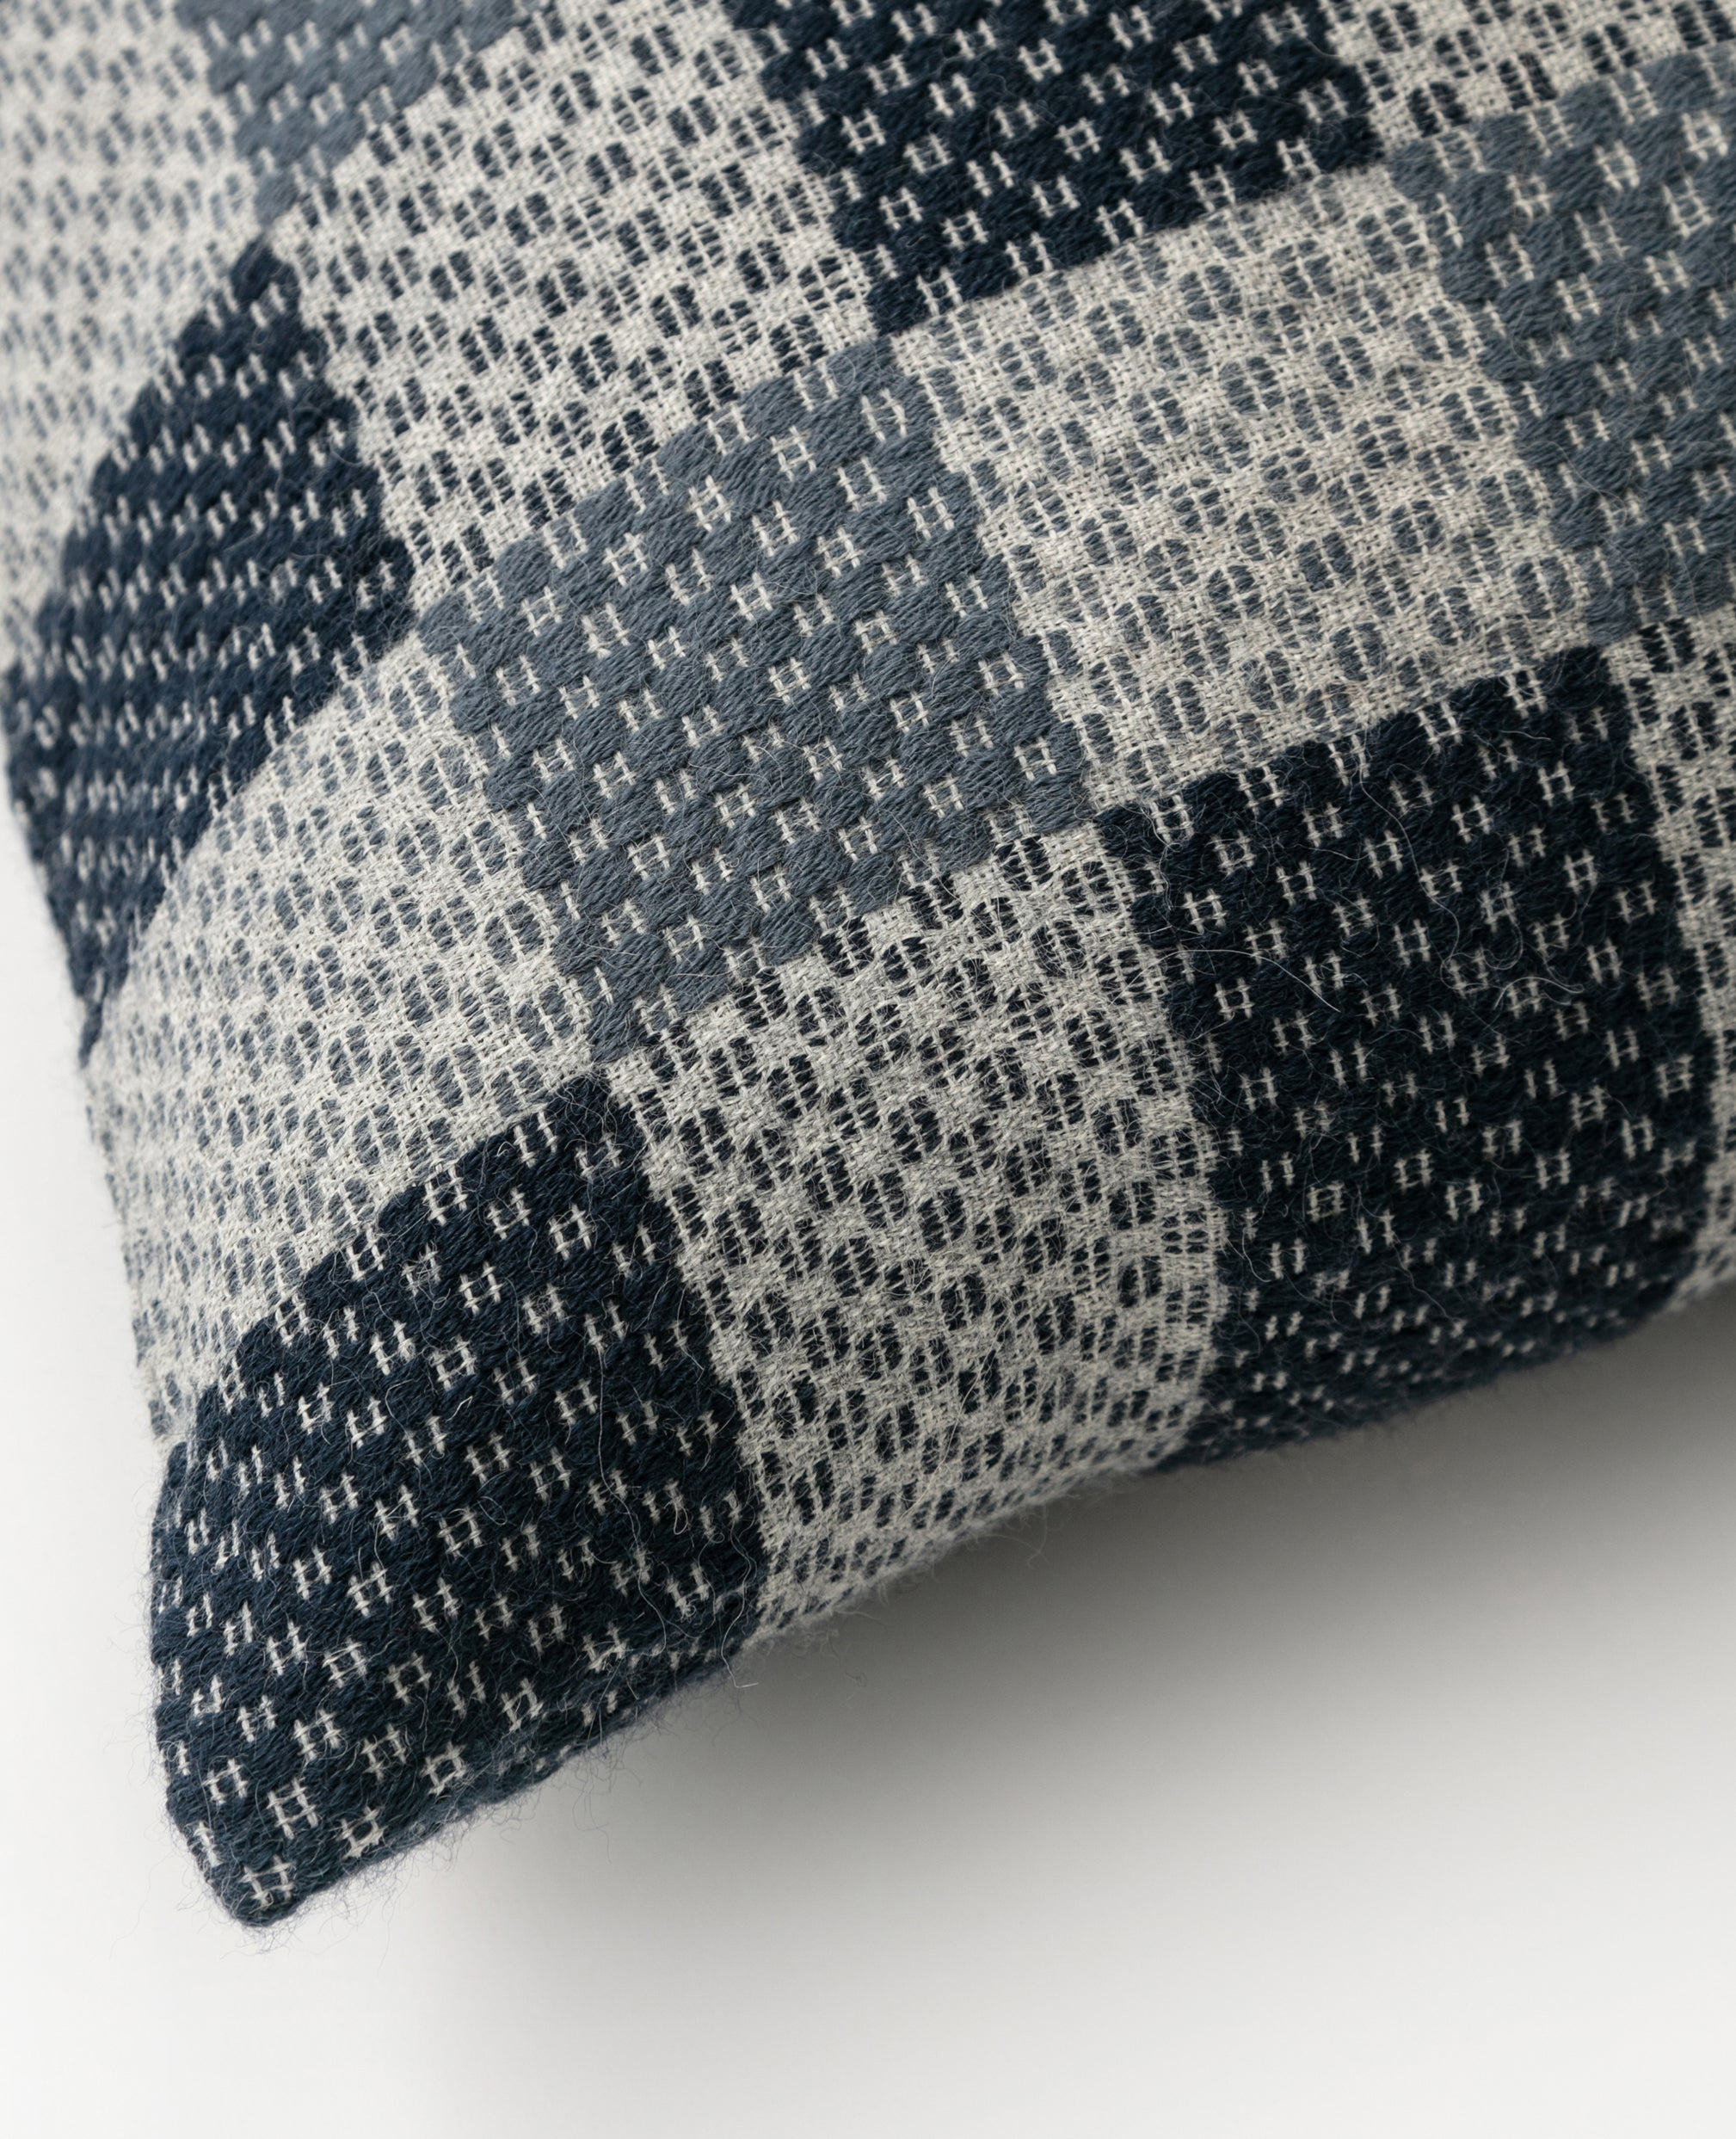 Kin overshot cushion detail